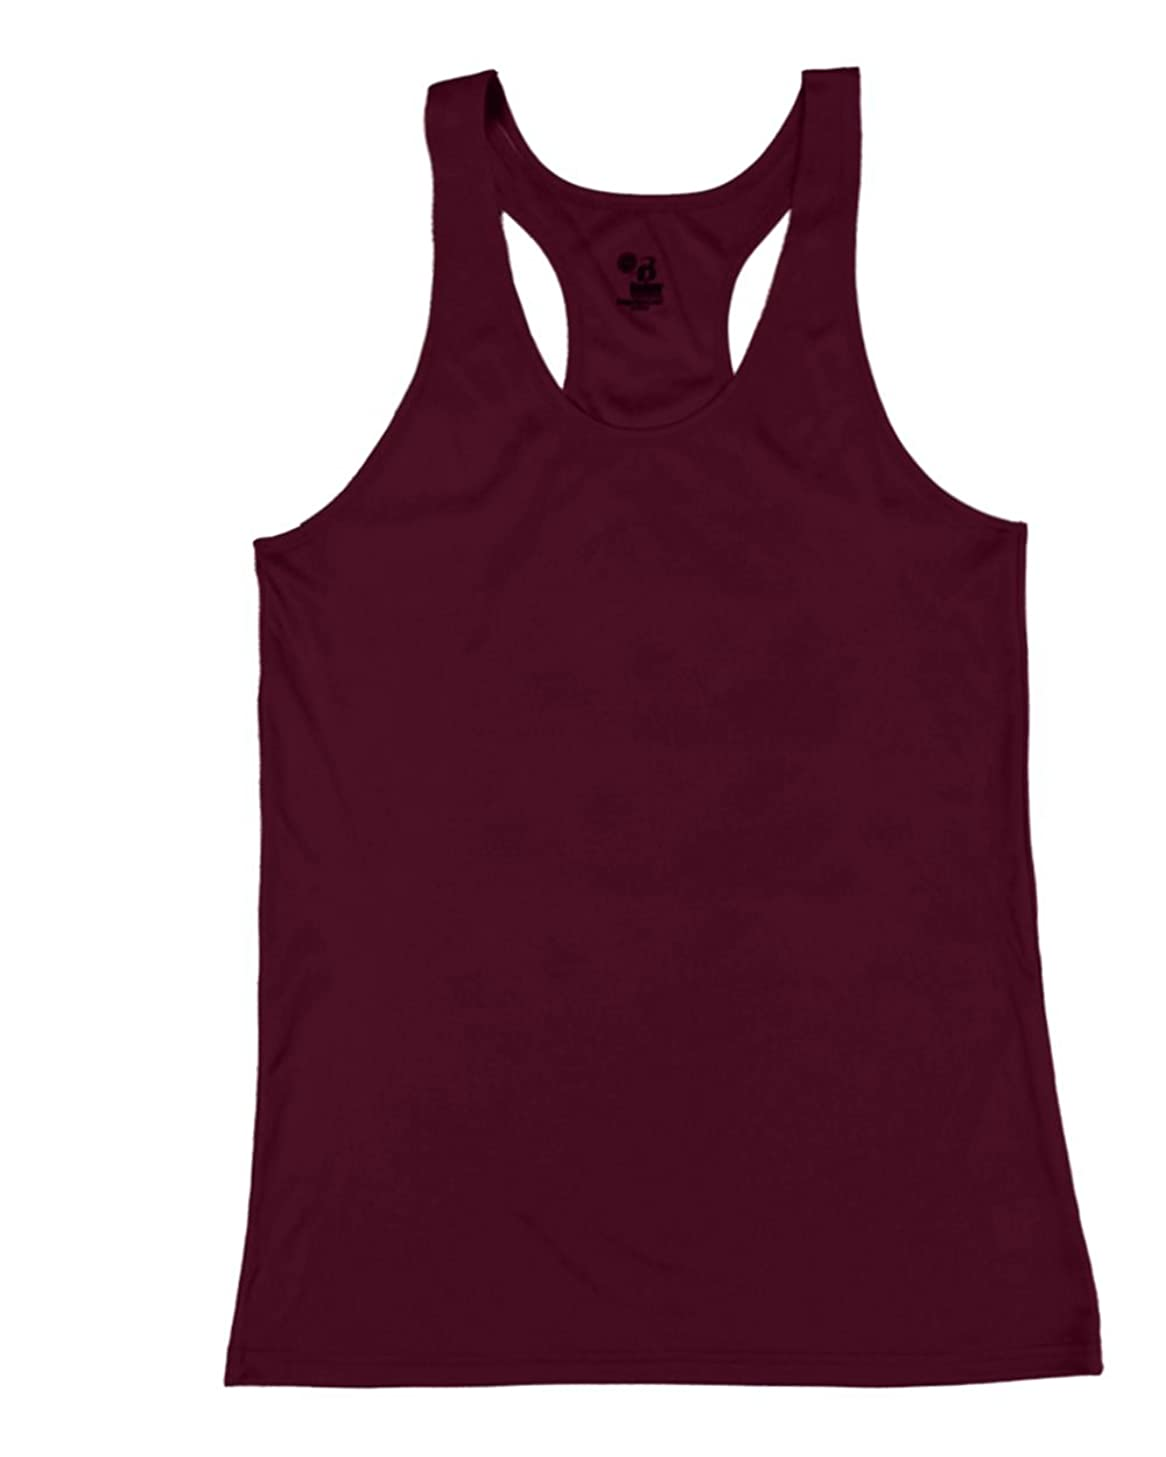 Badger Sport Maroon Ladies Medium B-Core Moisture Wicking Racerback Tank Sports Top